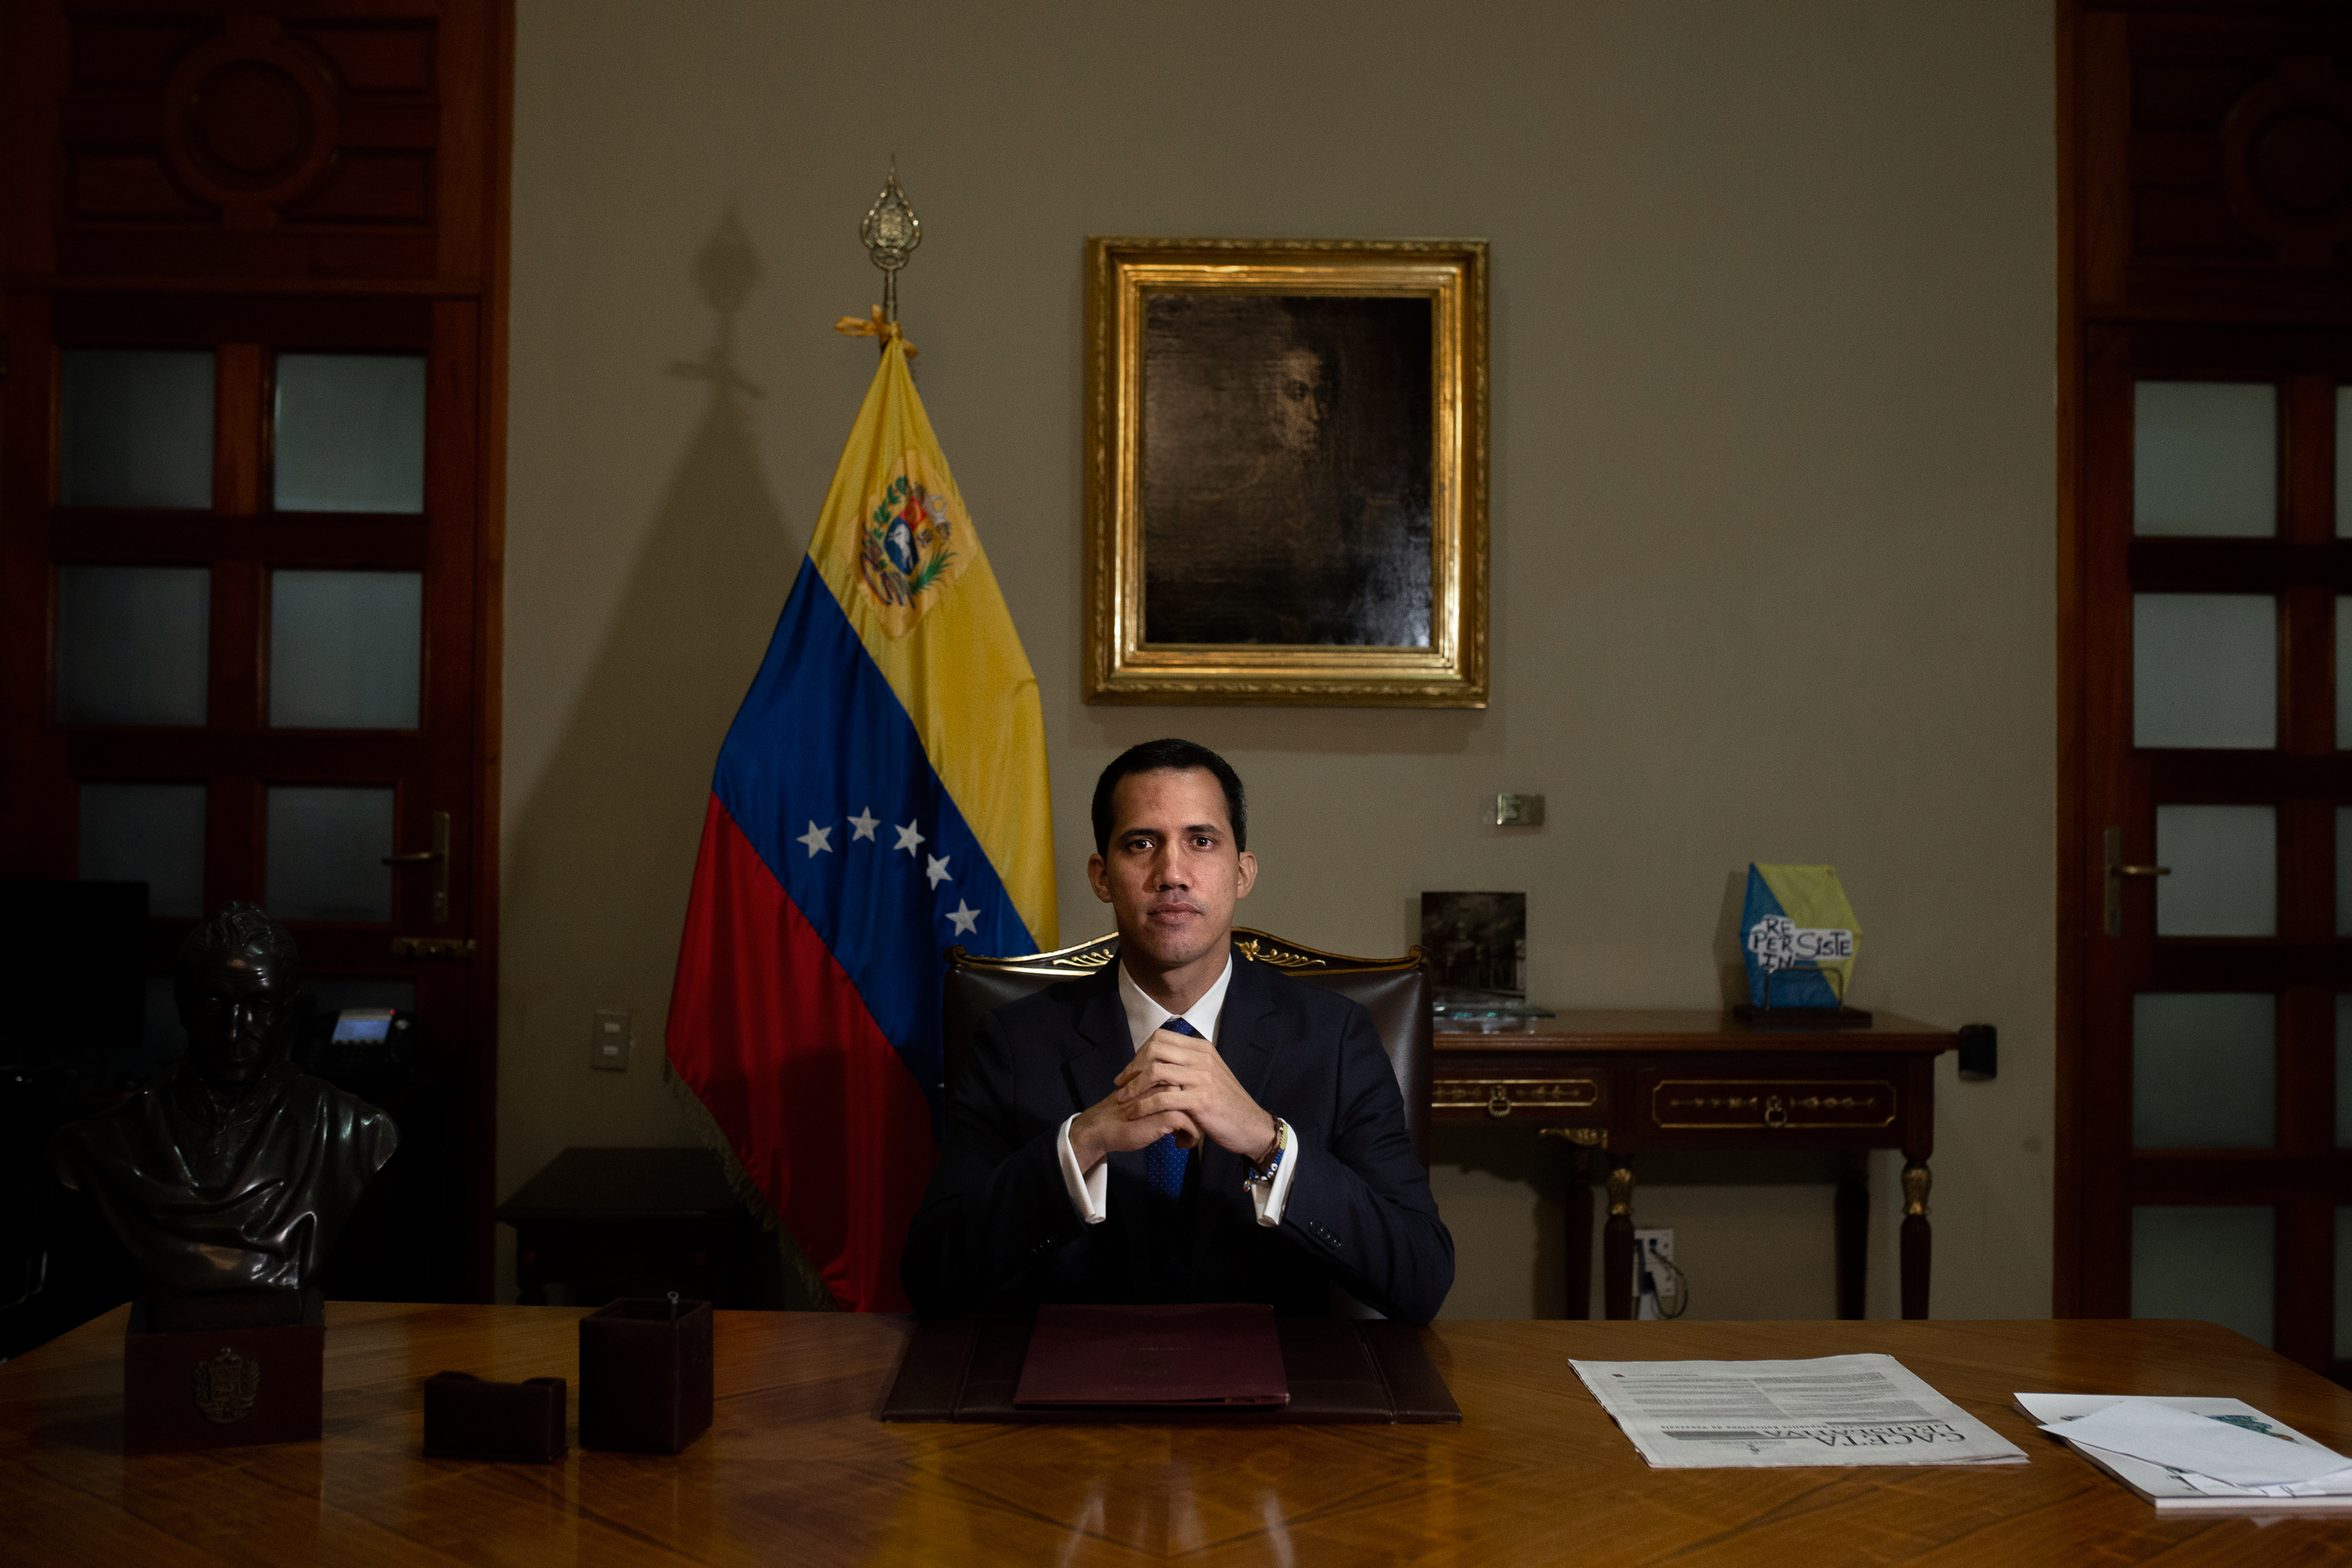 Guaidó poses for a portrait in his office in Caracas on Feb. 5, 2019.